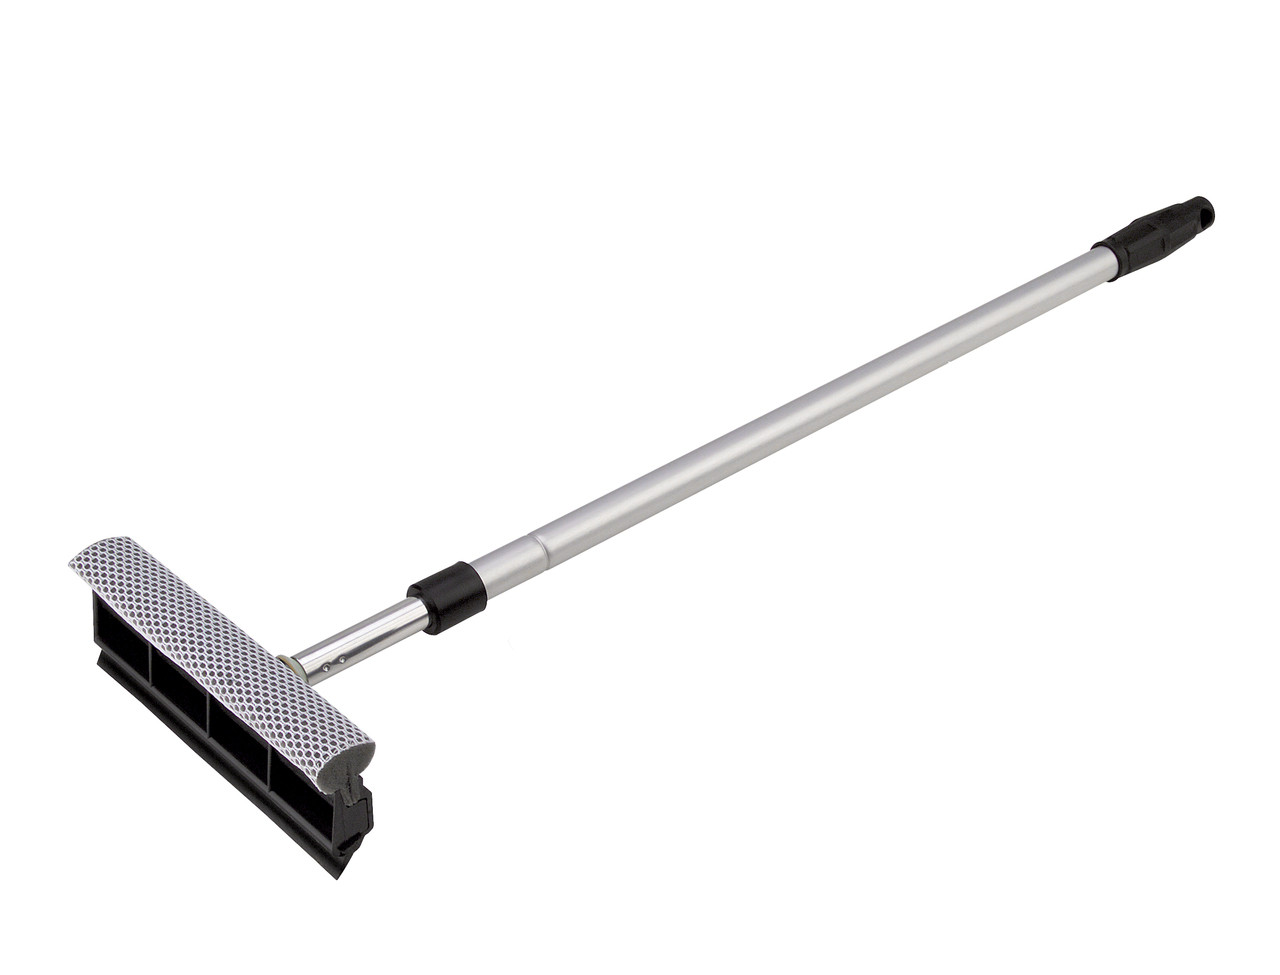 Windshield Squeegee Trucker Squeegee SUV Squeegee 791506 (Case of 12)